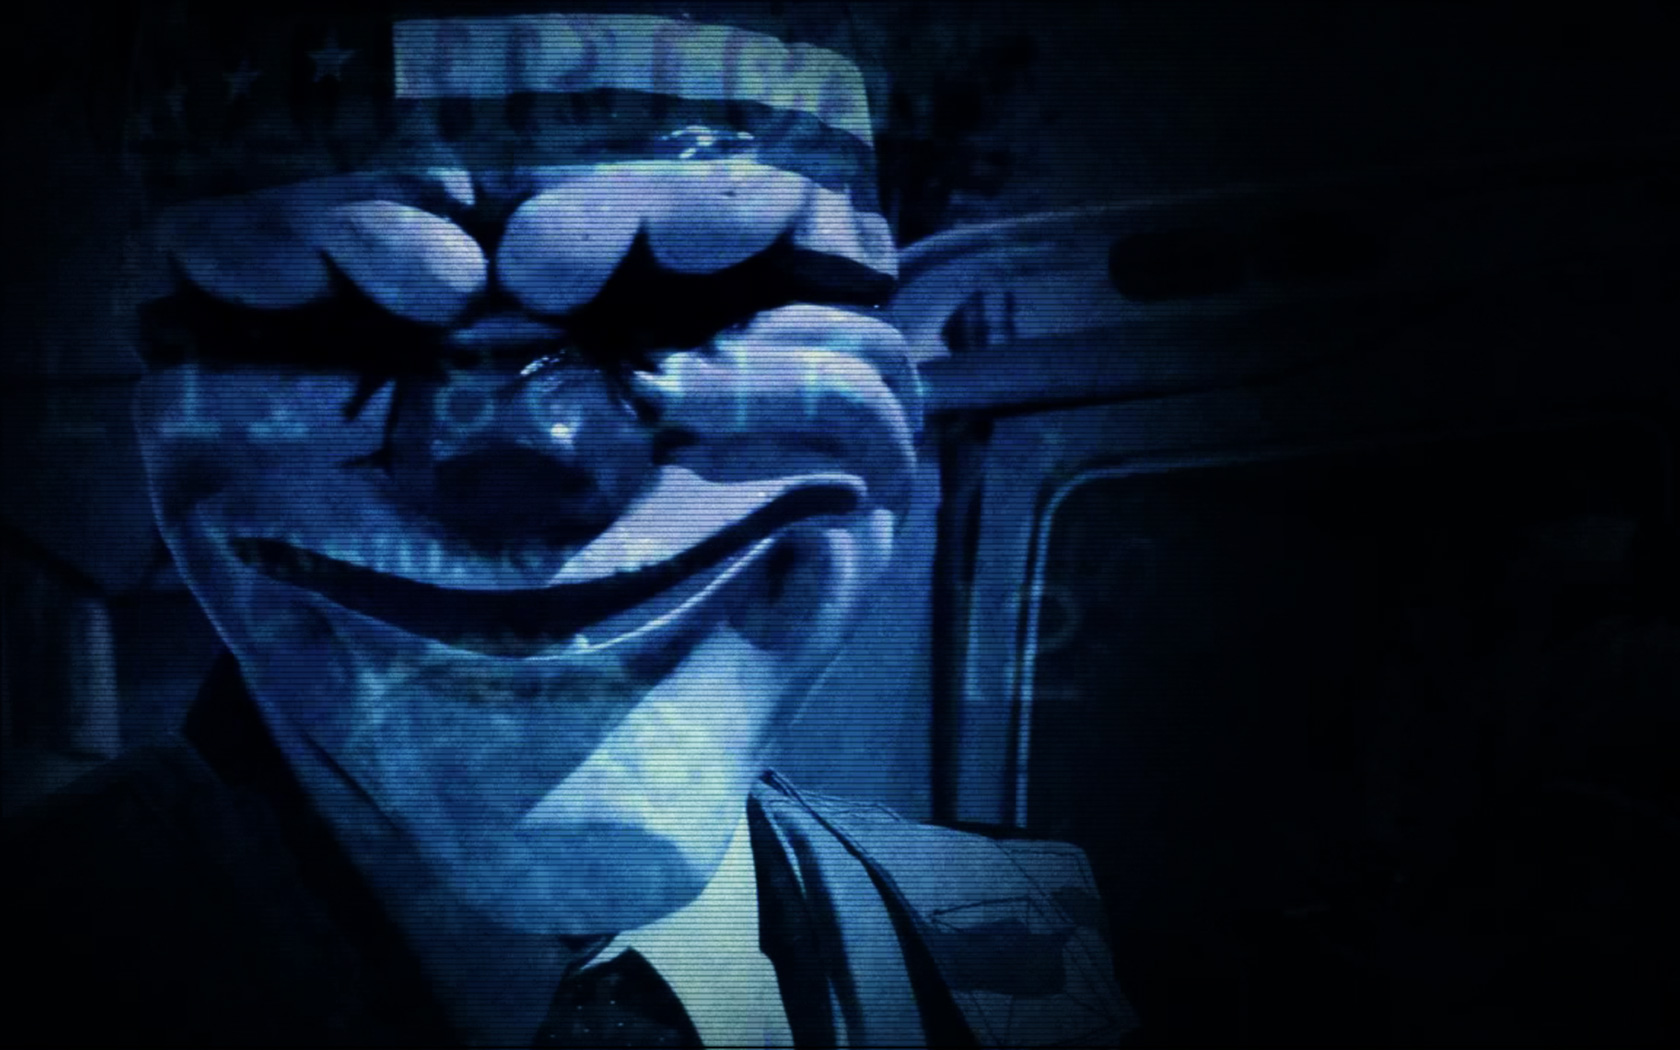 Free Payday 2 Wallpaper in 1680x1050